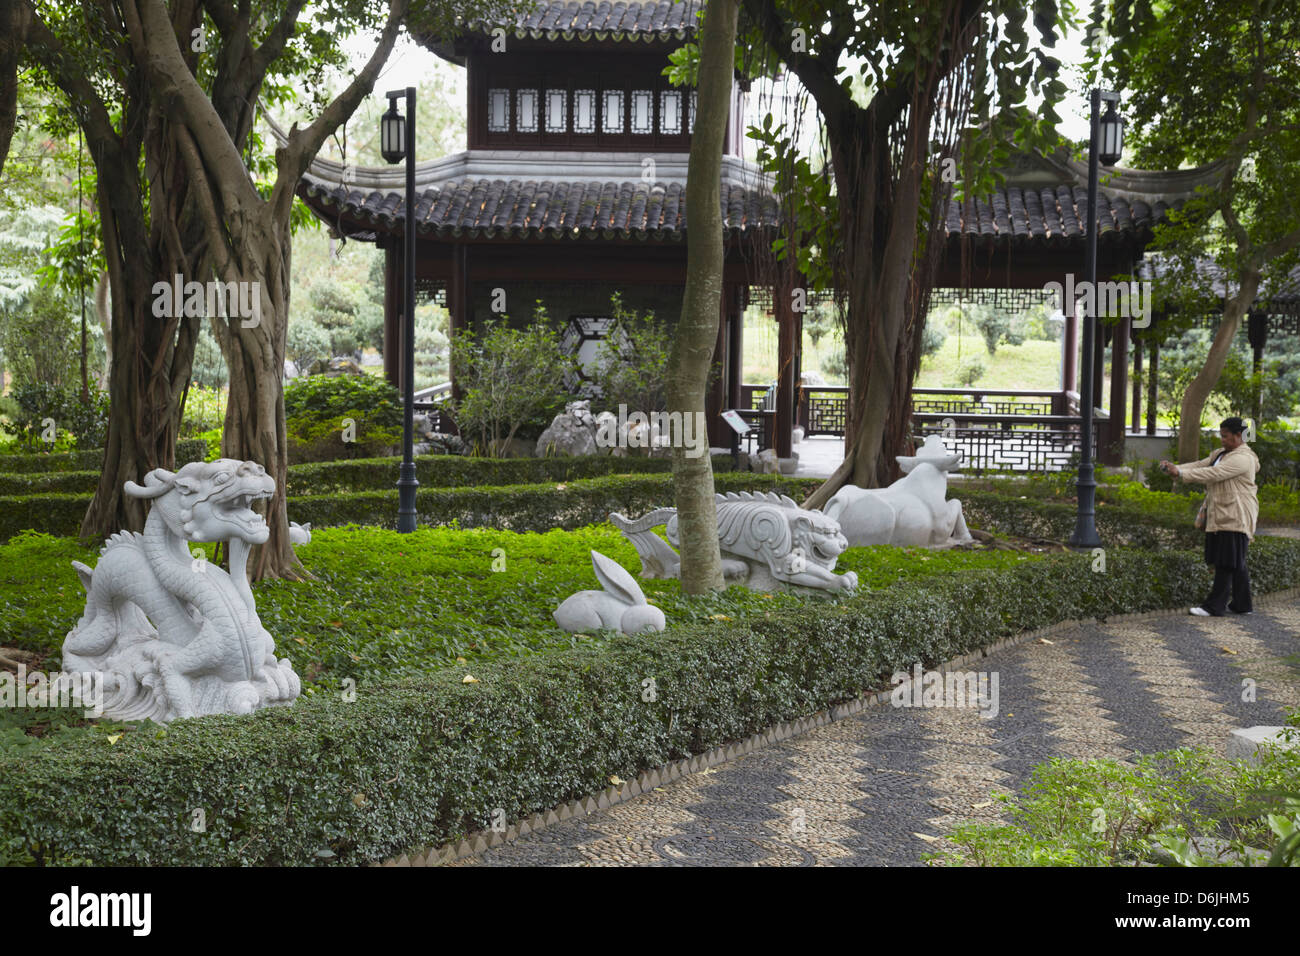 Chinese Zodiac statues in Kowloon Walled City, Kowloon, Hong Kong, China, Asia Stock Photo